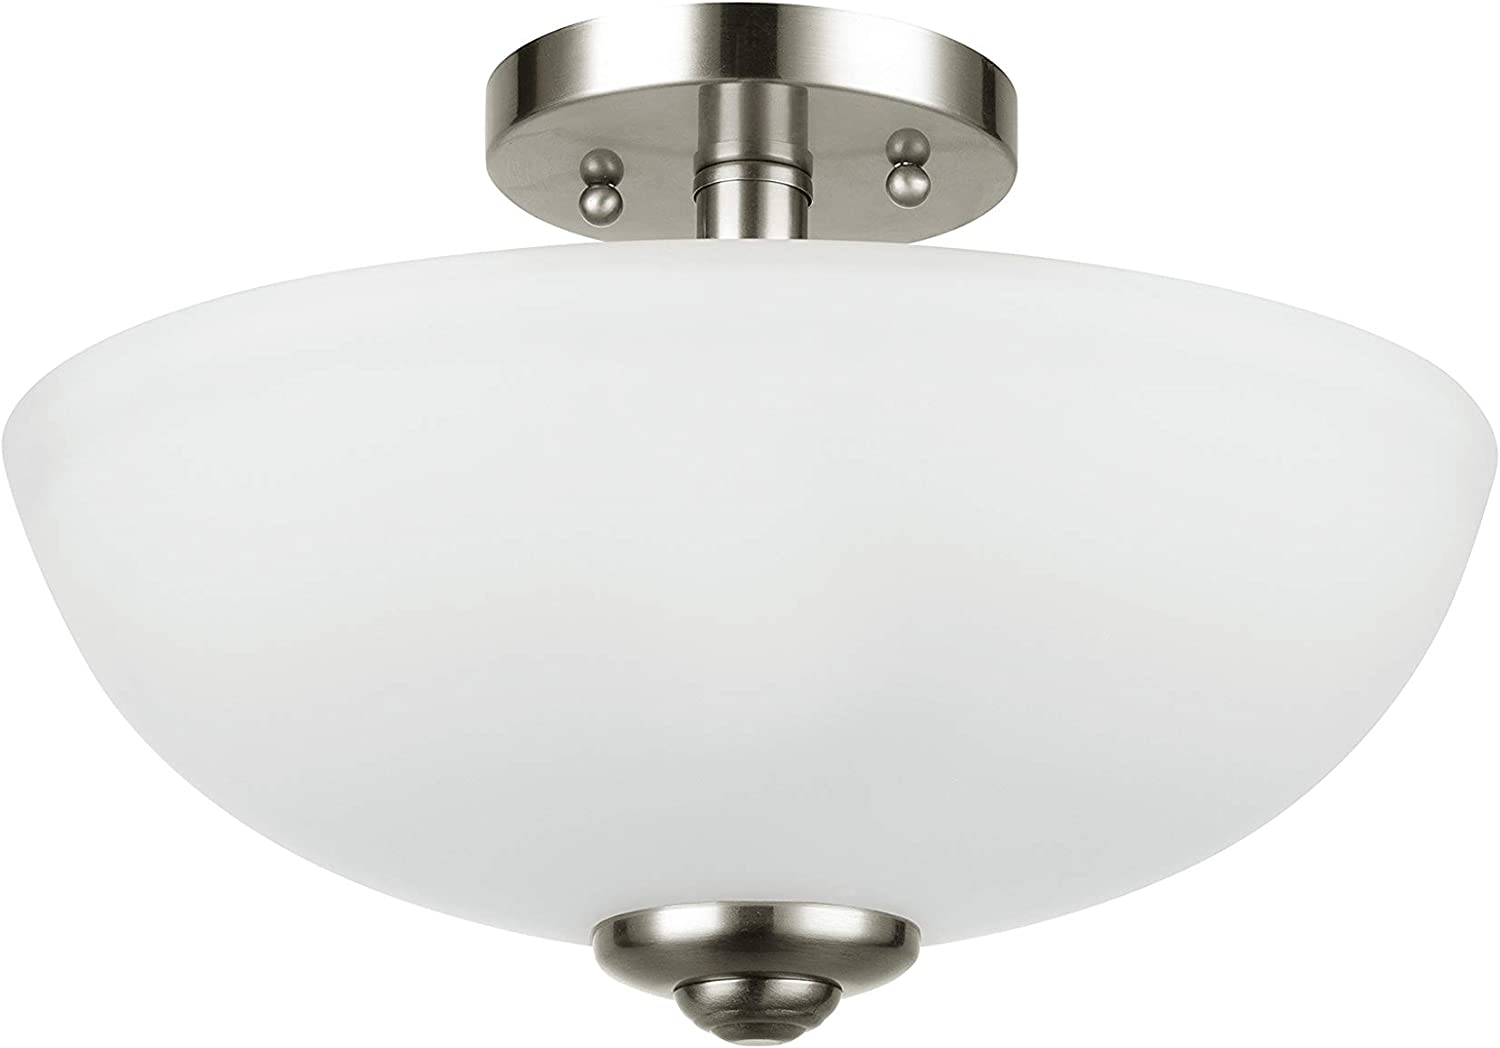 Amazon Brand - Ravenna Home 2-Light Semiflush-Mount Ceiling Light with Frosted Glass Shade, 8.3